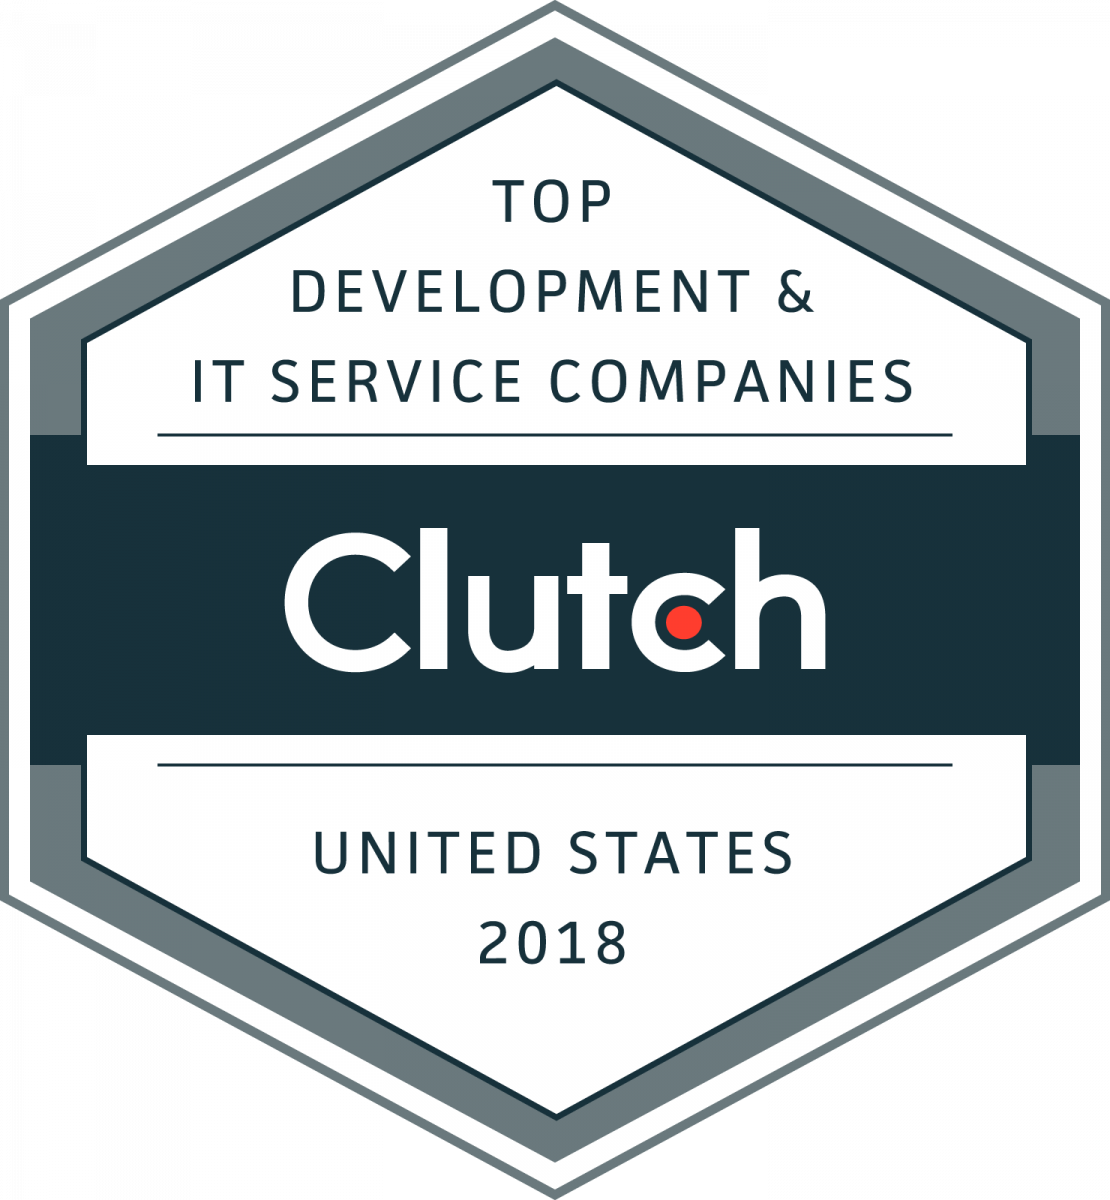 Clutch-TopITserviceCompanies